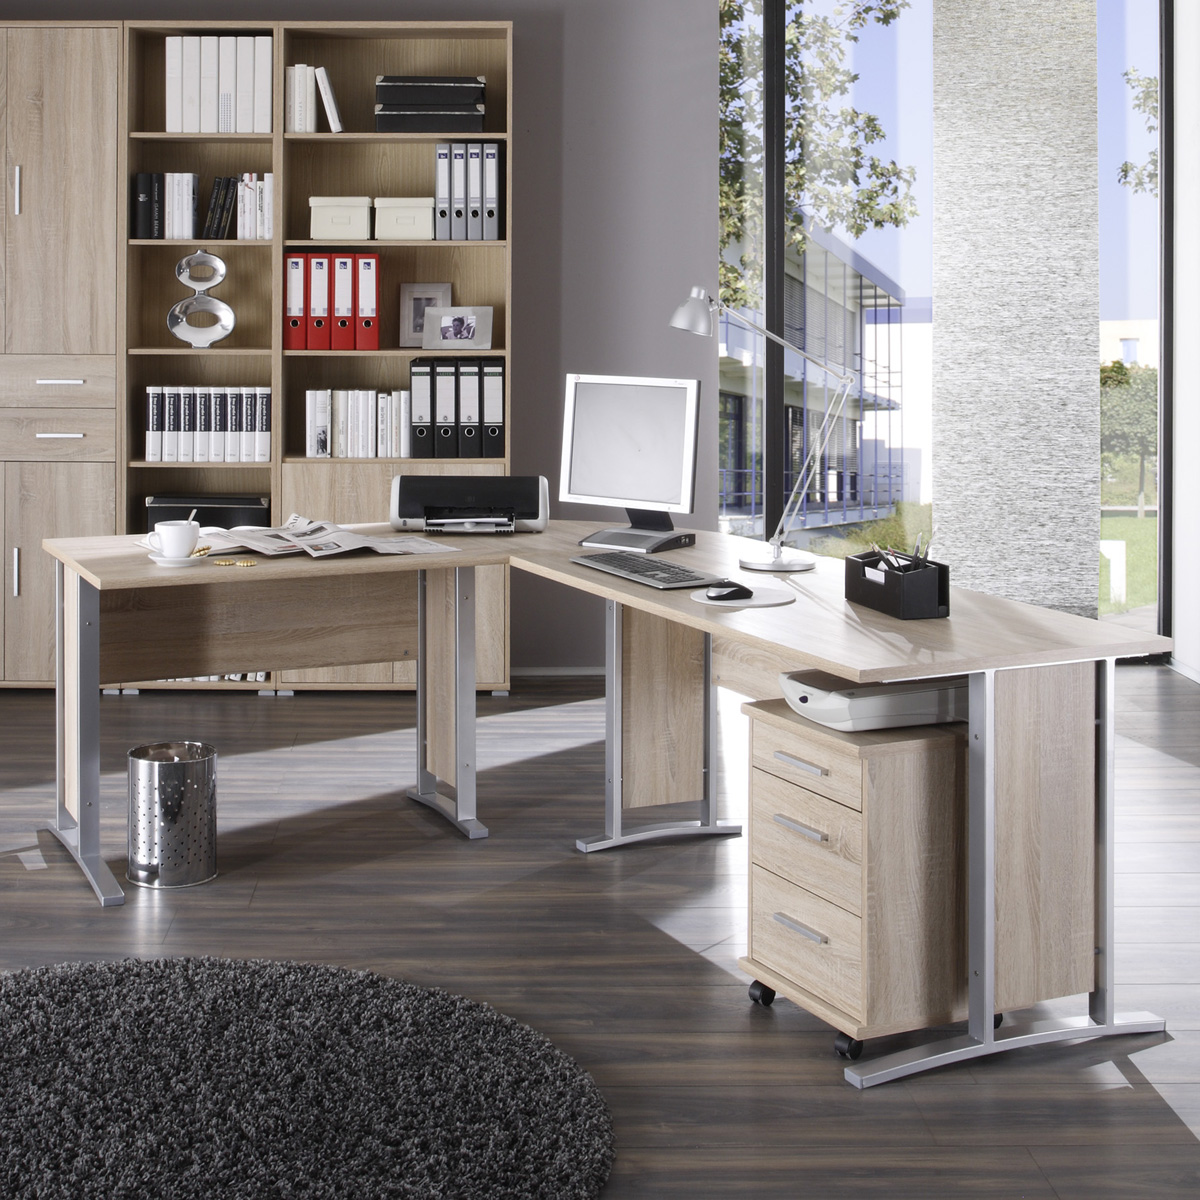 winkelschreibtisch office line biz schreibtisch kombination sonoma eiche ebay. Black Bedroom Furniture Sets. Home Design Ideas